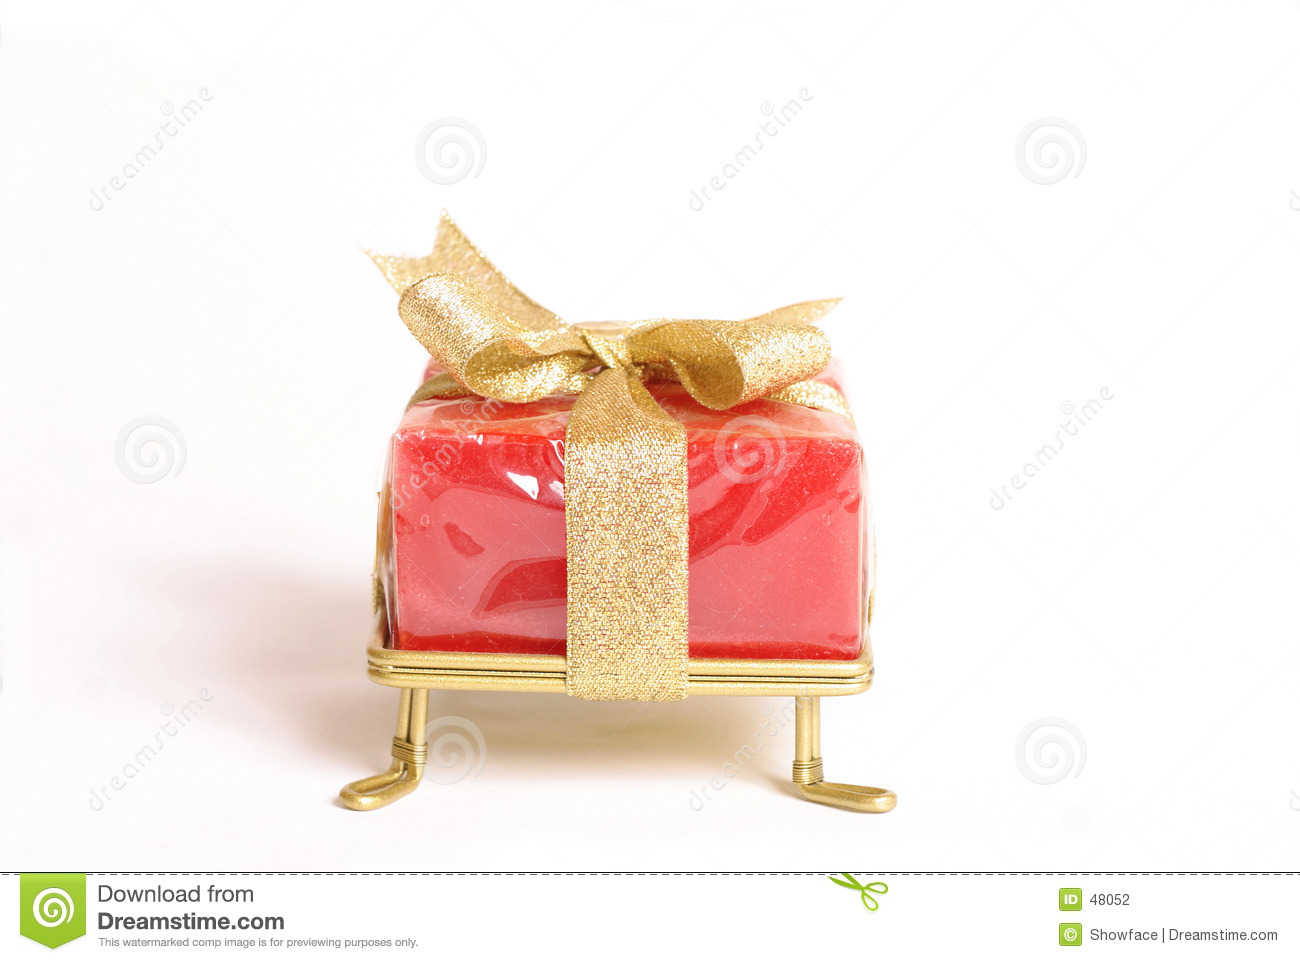 Small wrapped gift